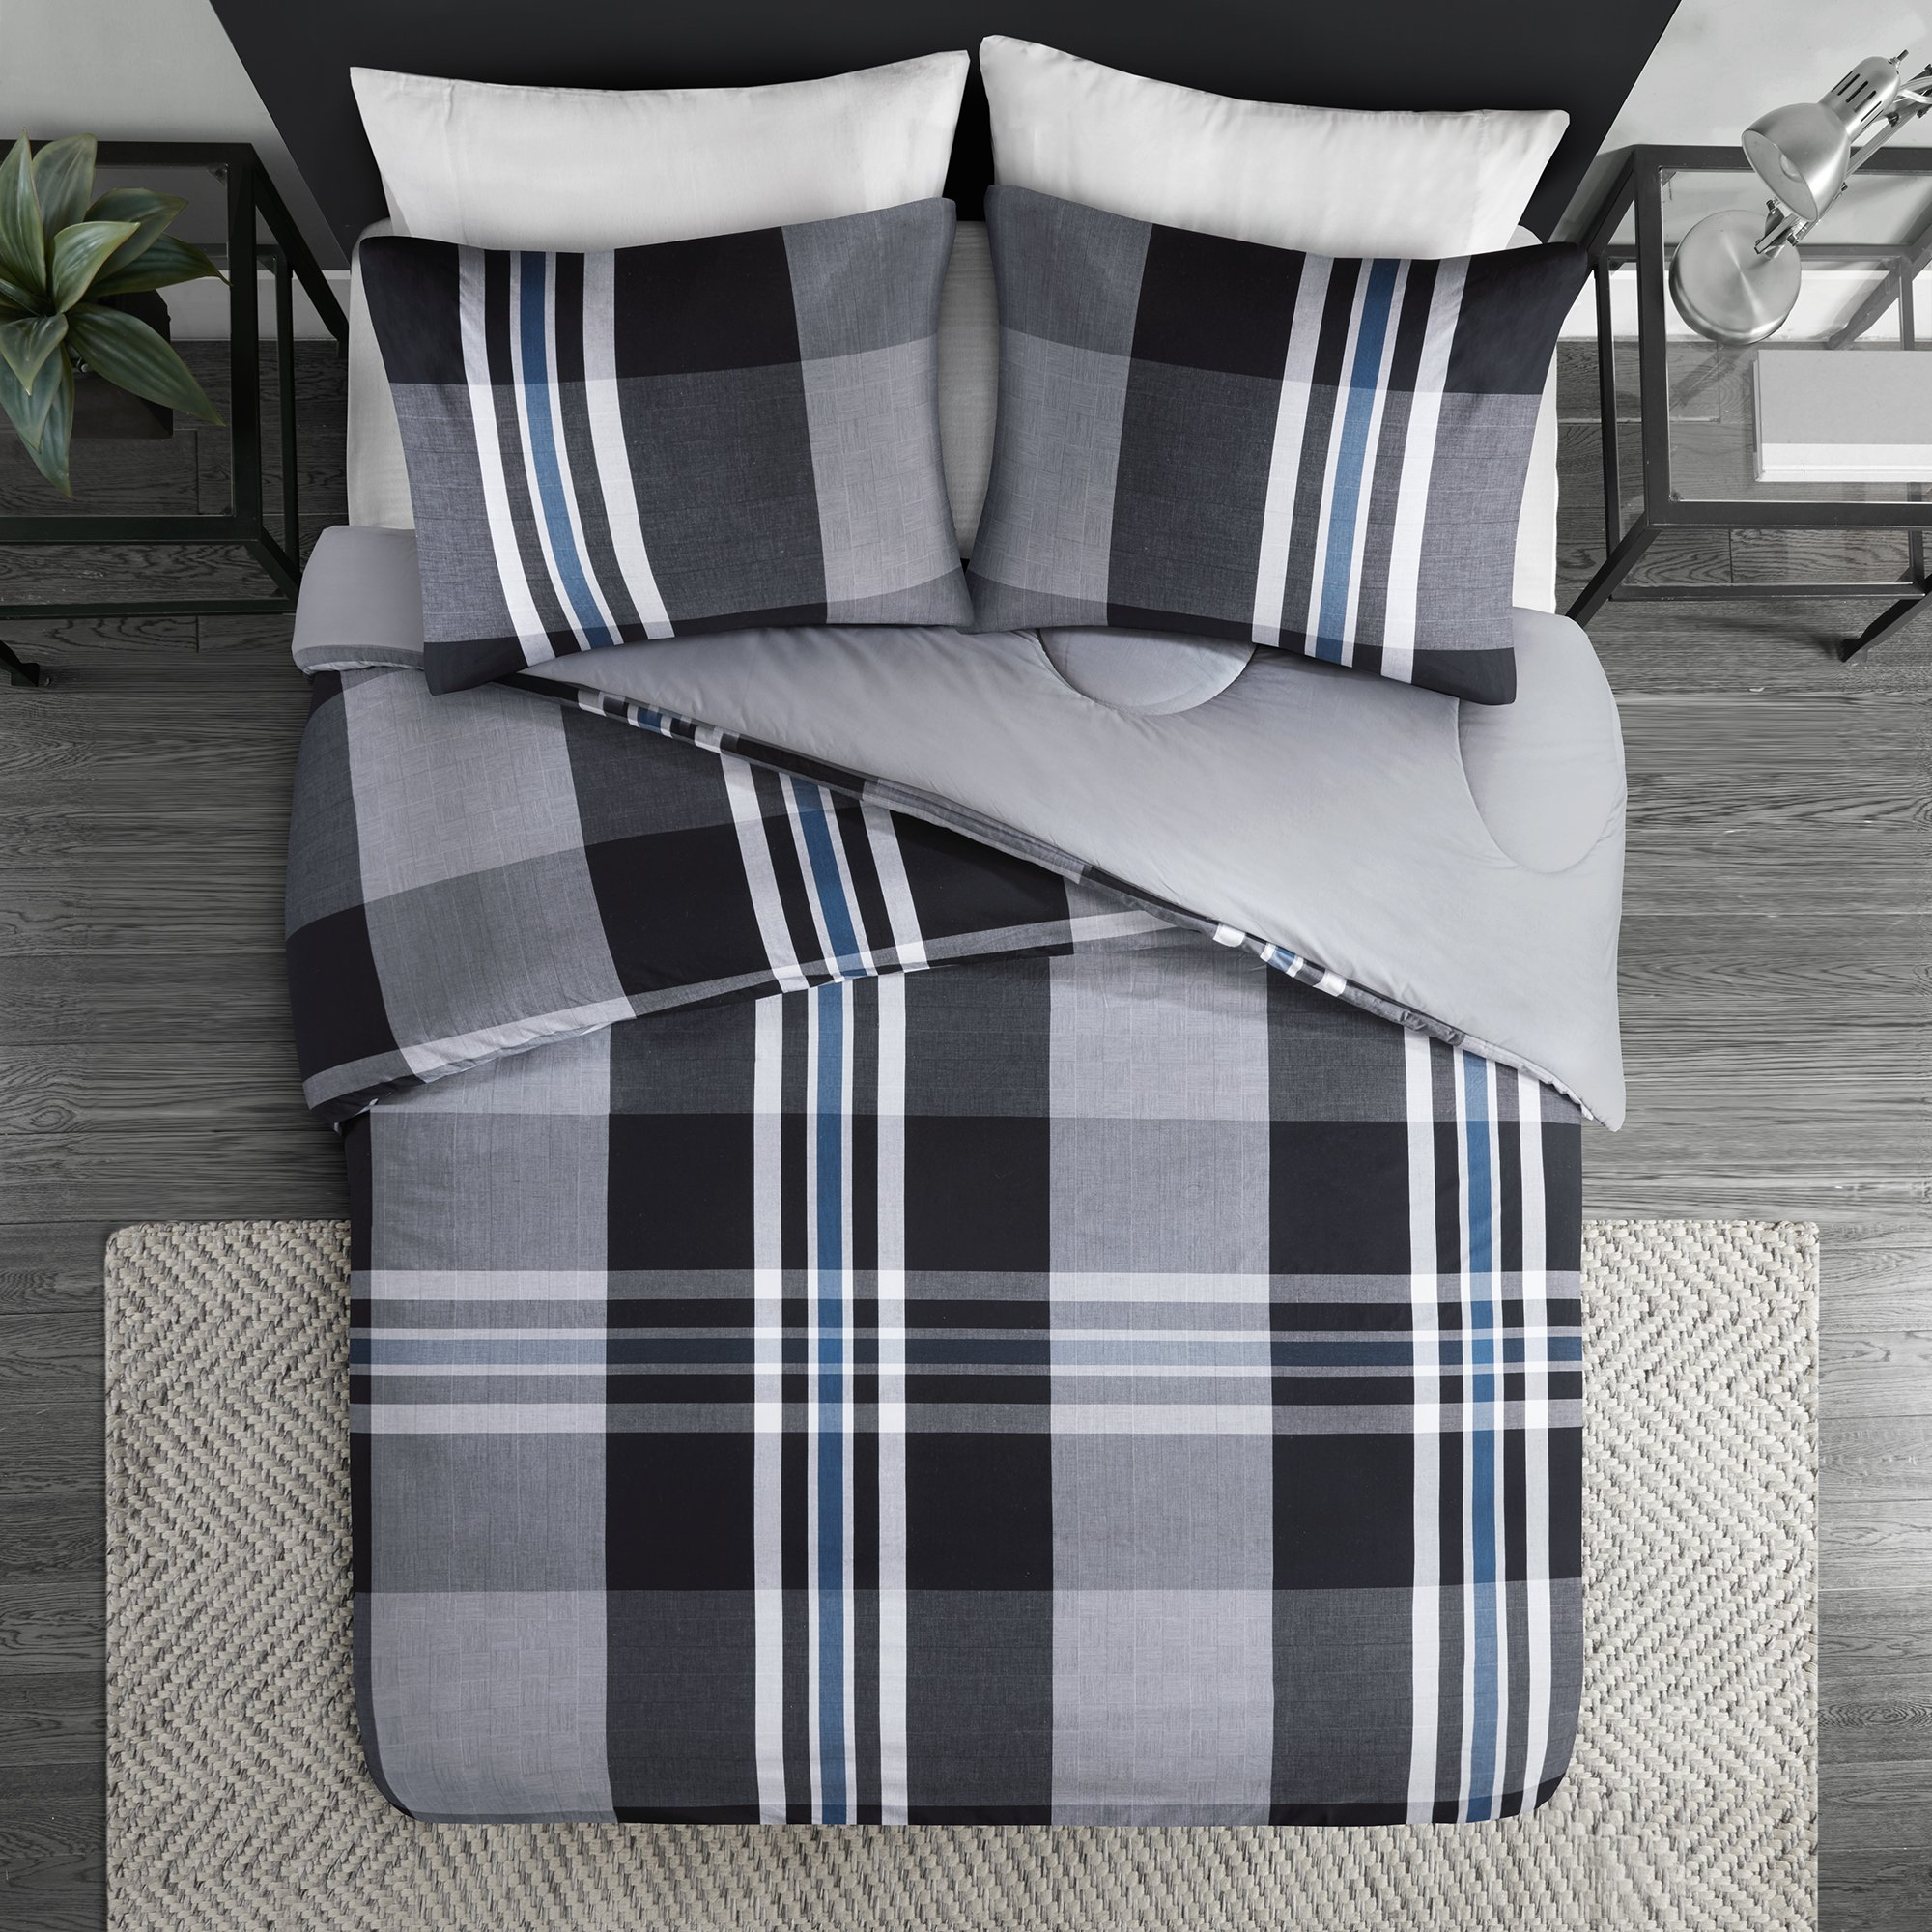 Ink+Ivy Nathan Twin Comforter Set Teen Boy Bedding - Grey, Plaid – 2 Piece Bed Sets – 100% Cotton Yarn Bed Comforter by Ink+Ivy (Image #3)